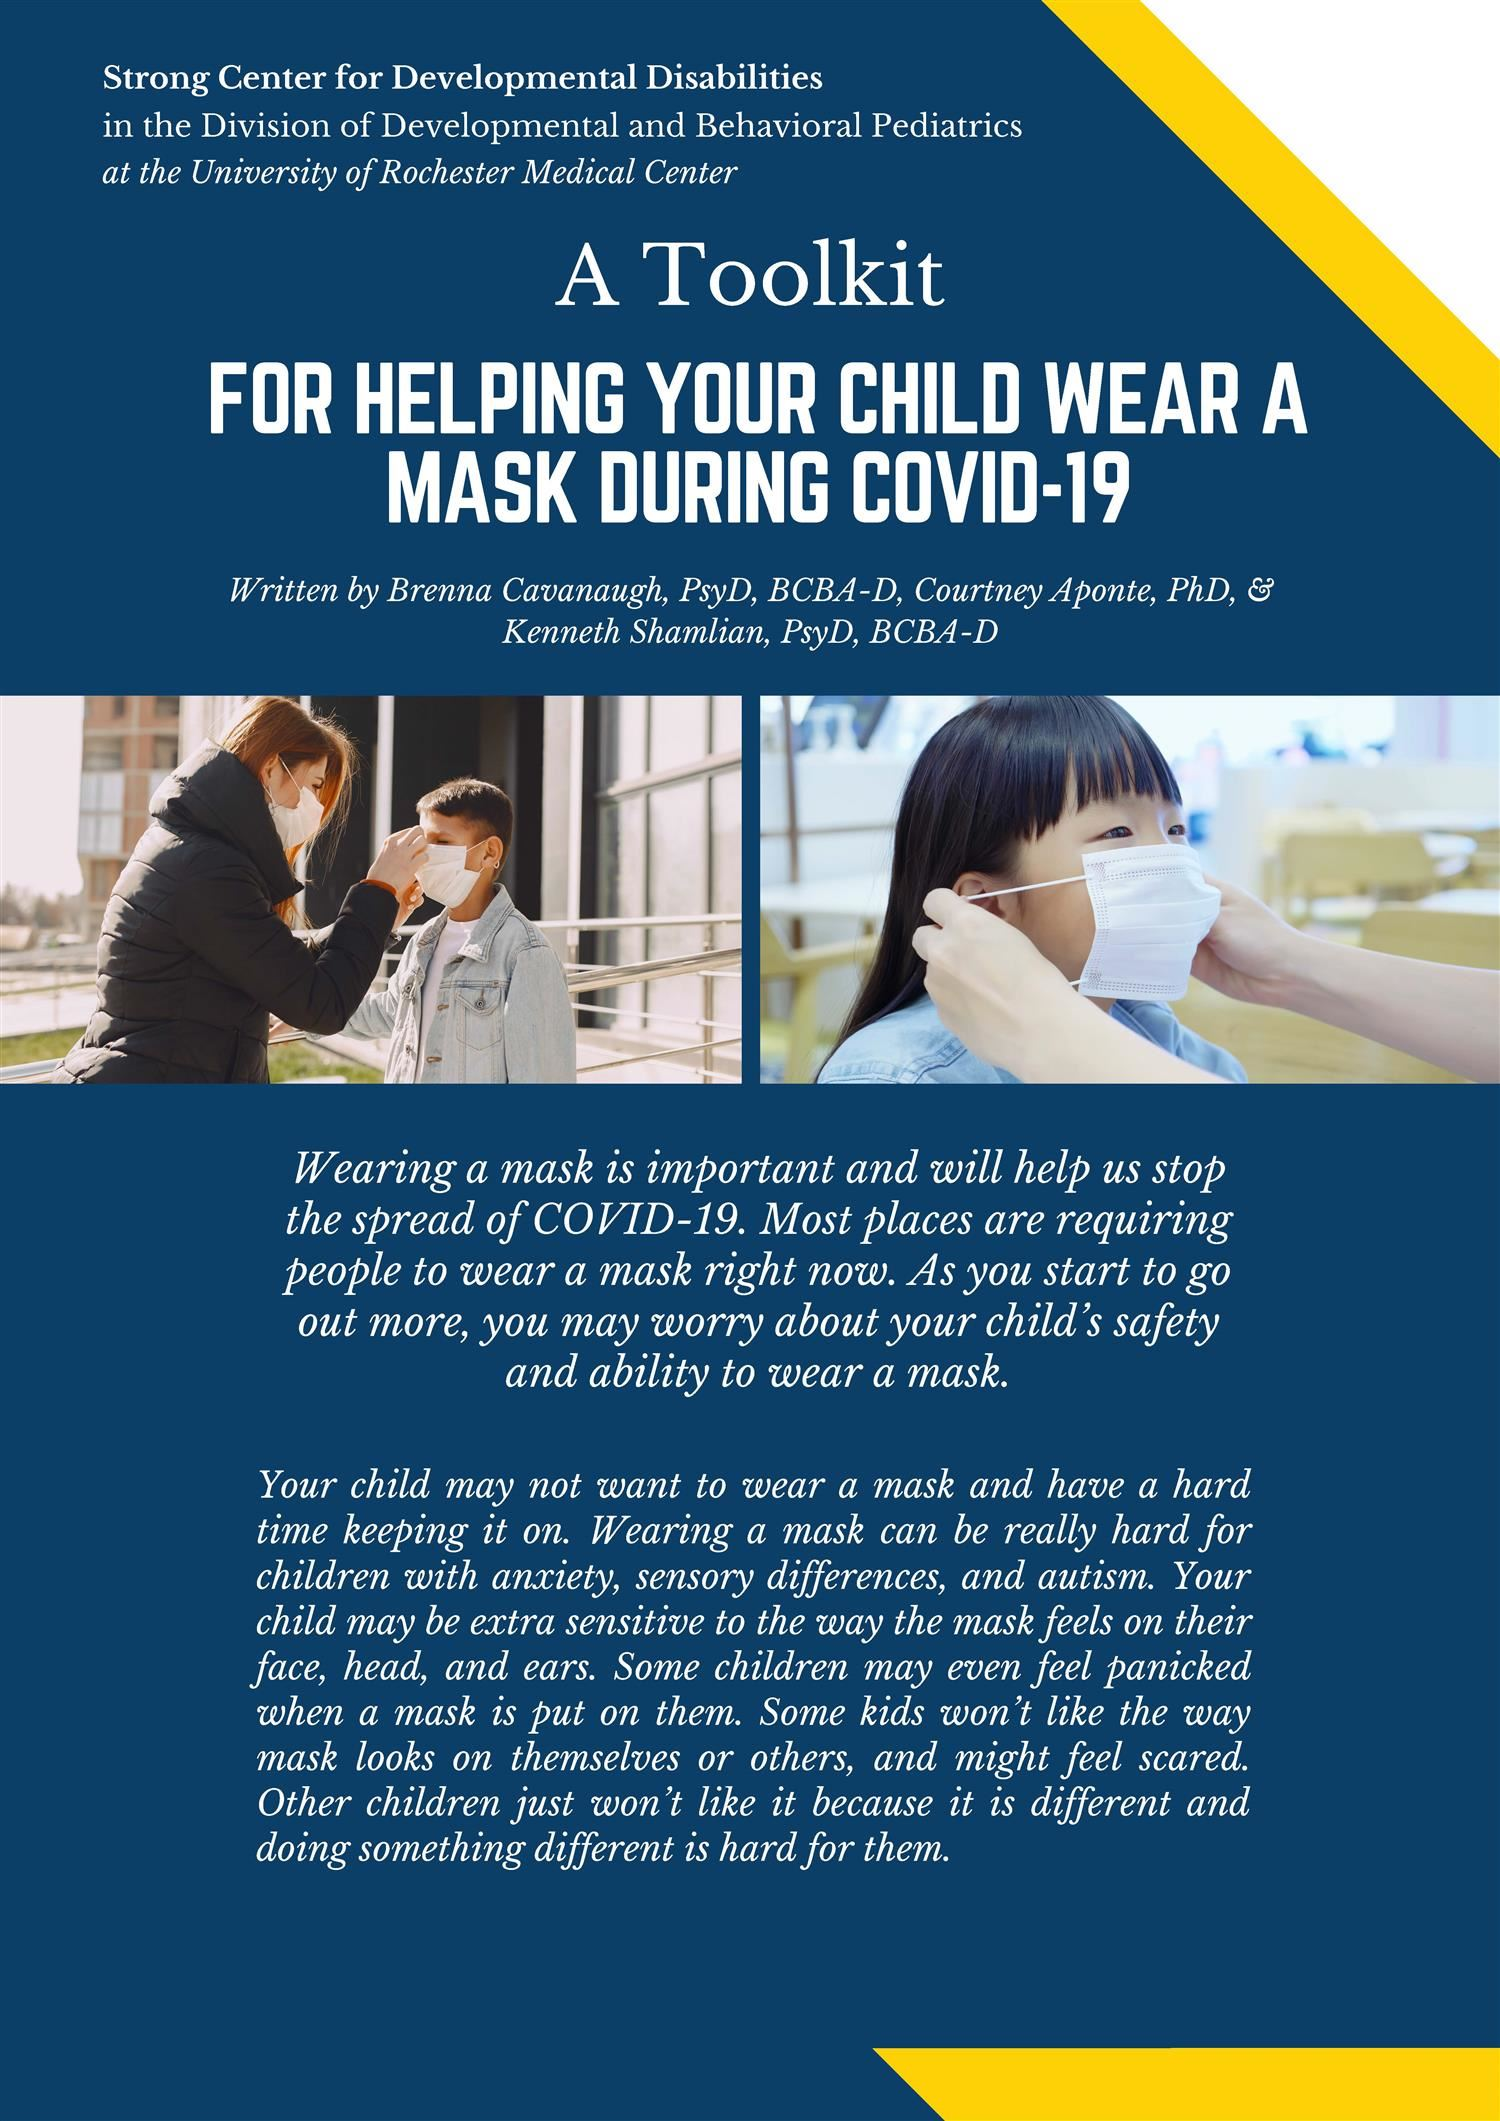 A Toolkit for Helping a Child Wear a Mask